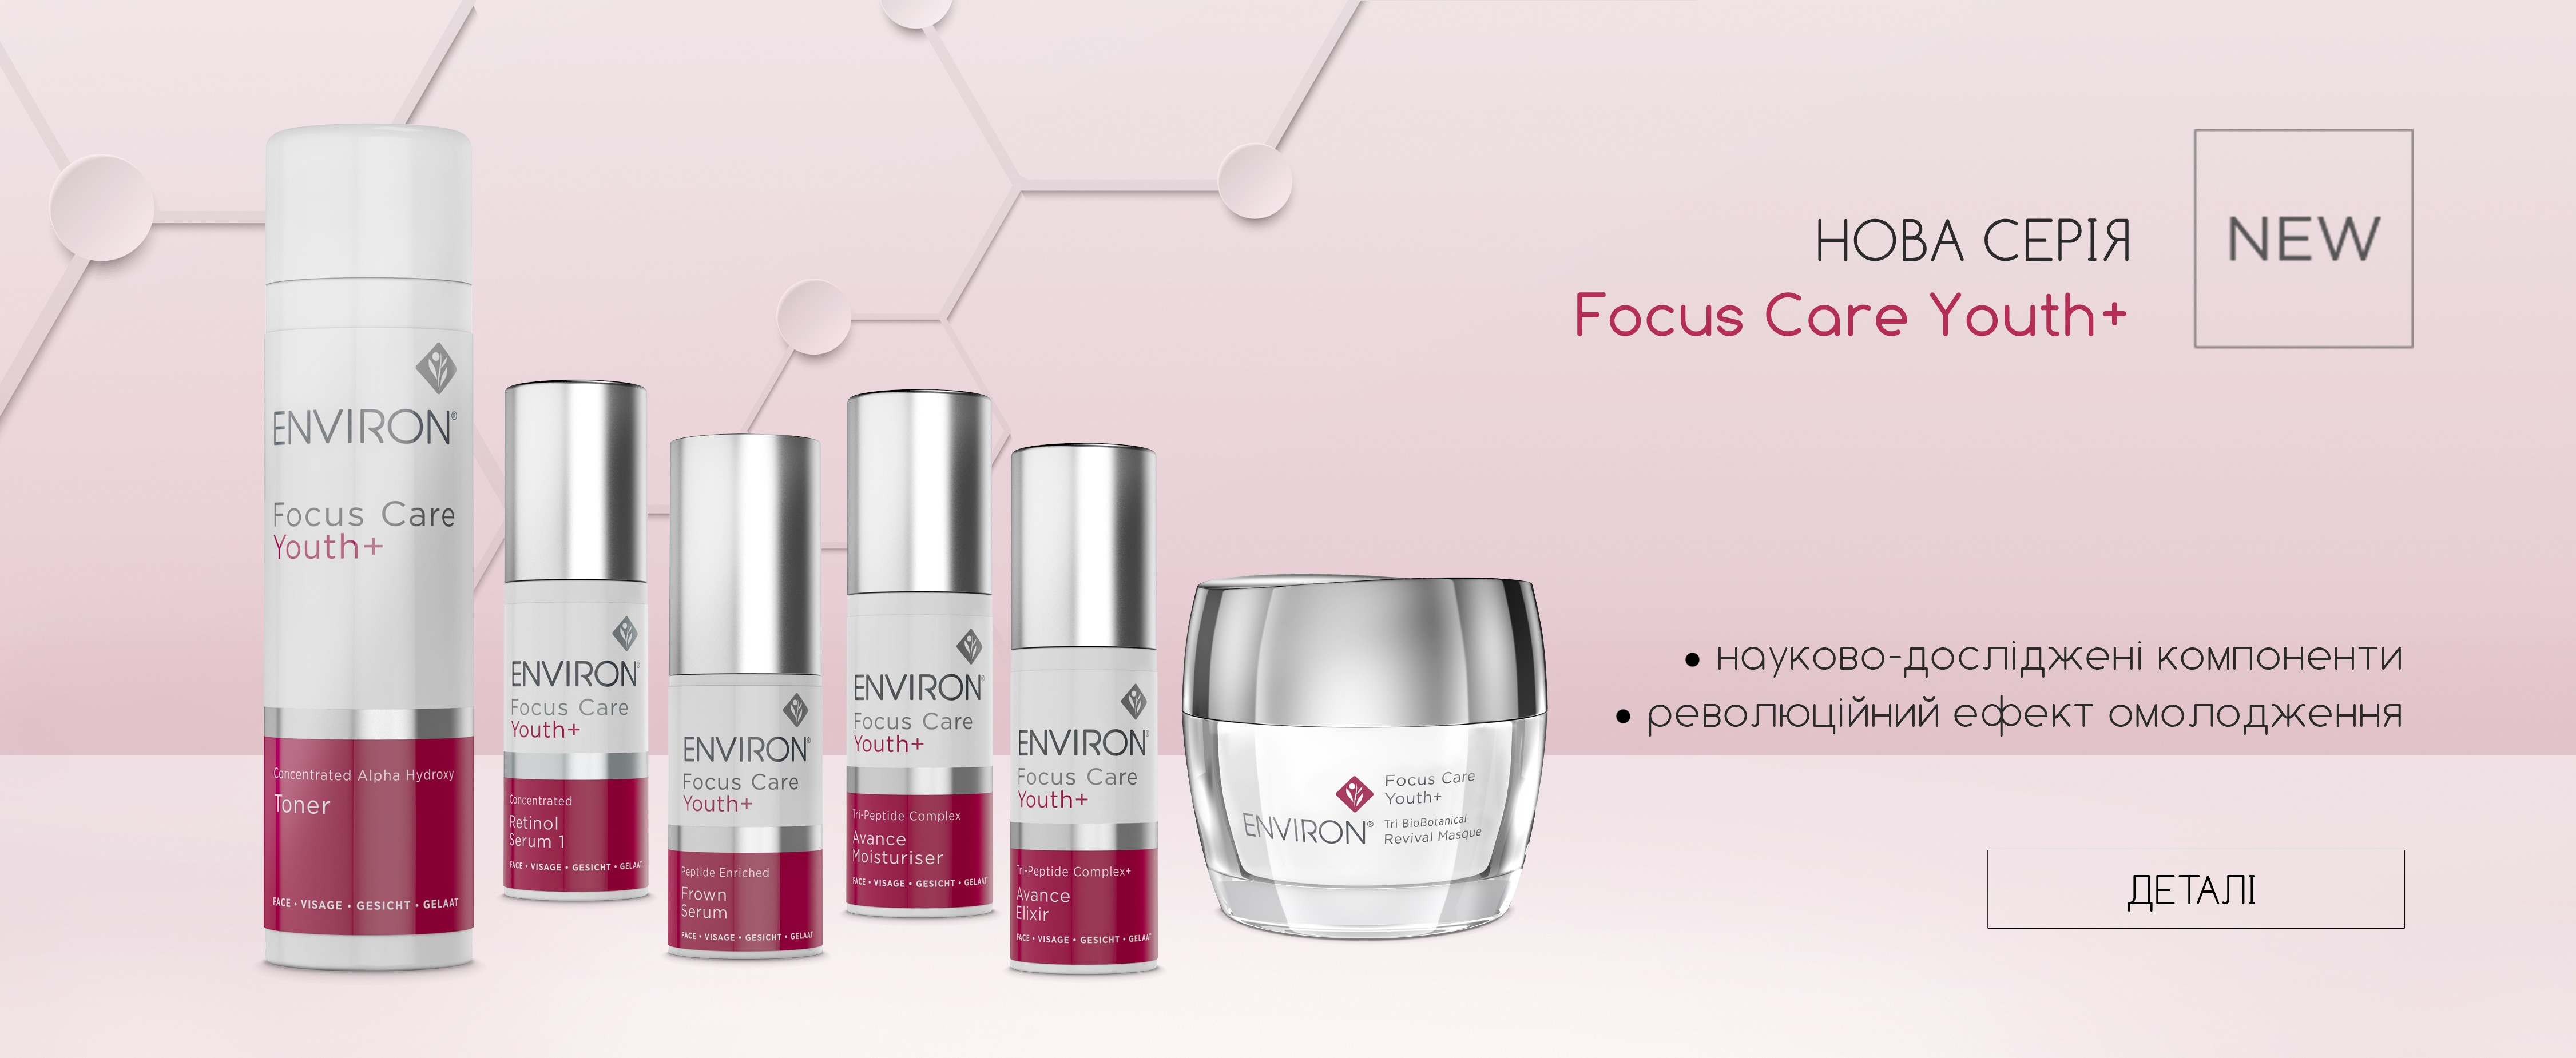 Environ Focus Care Youth